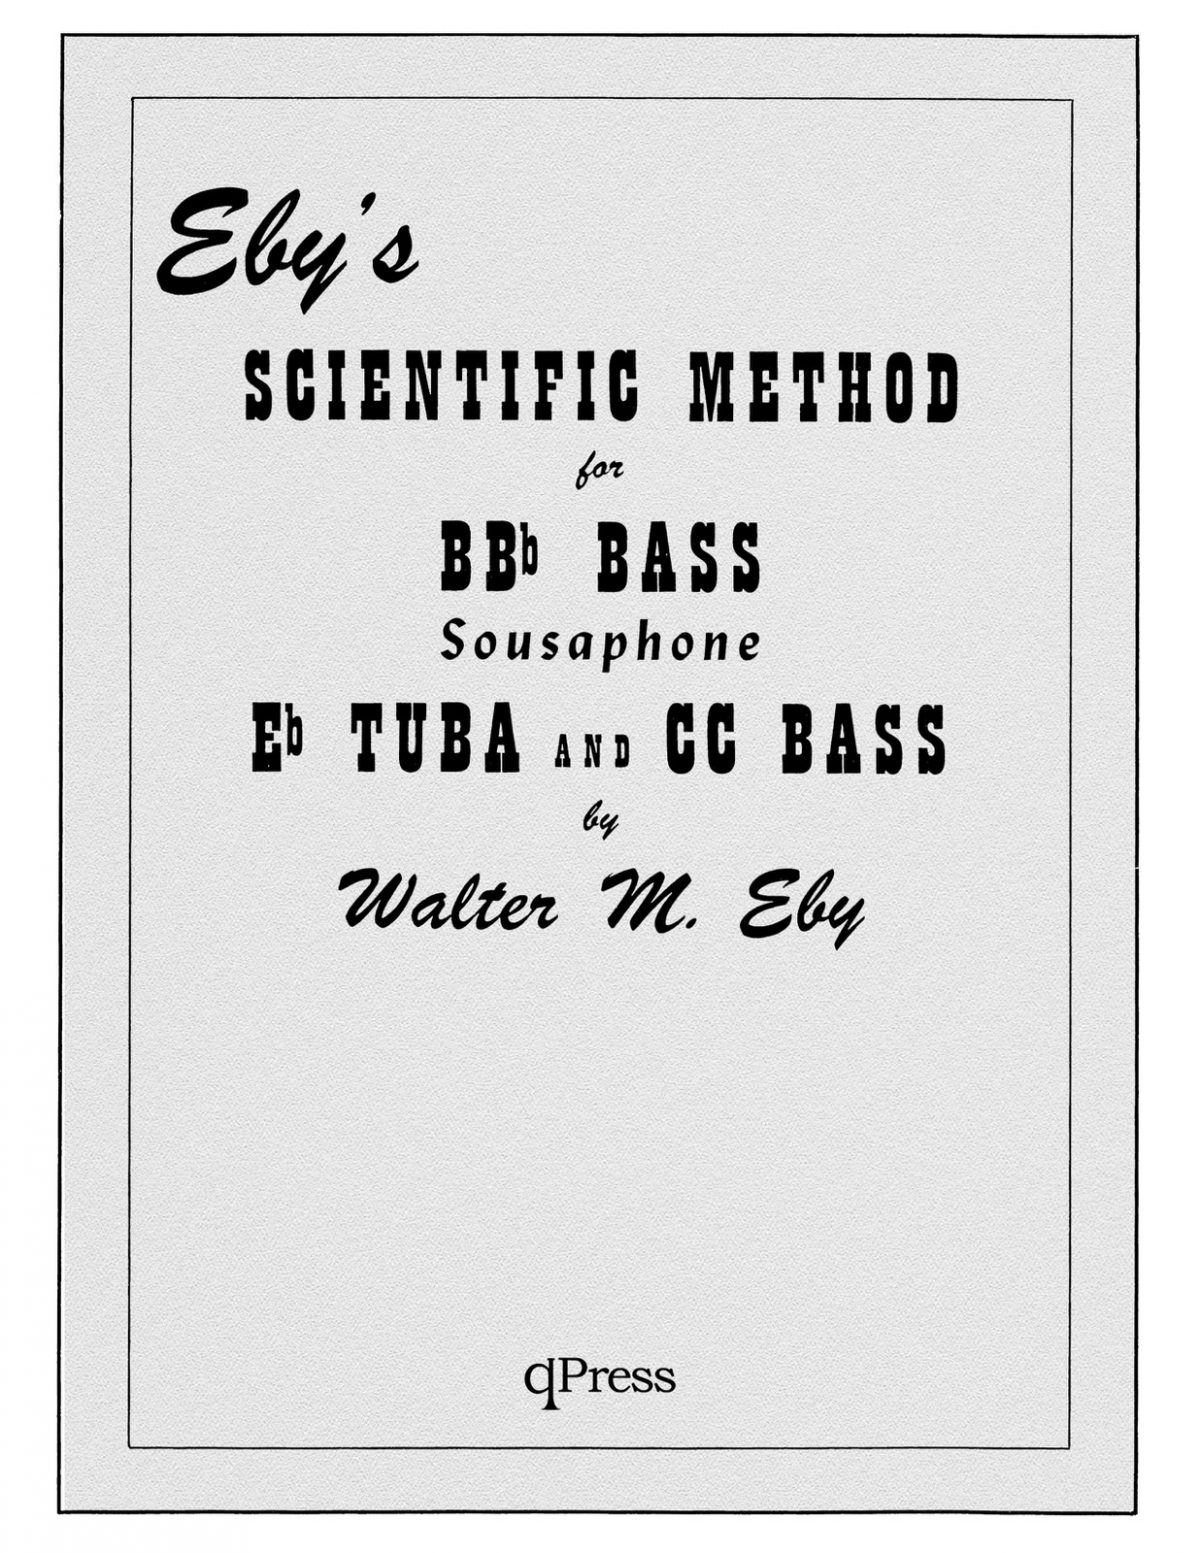 Eby, Scientific Method for Tuba Complete